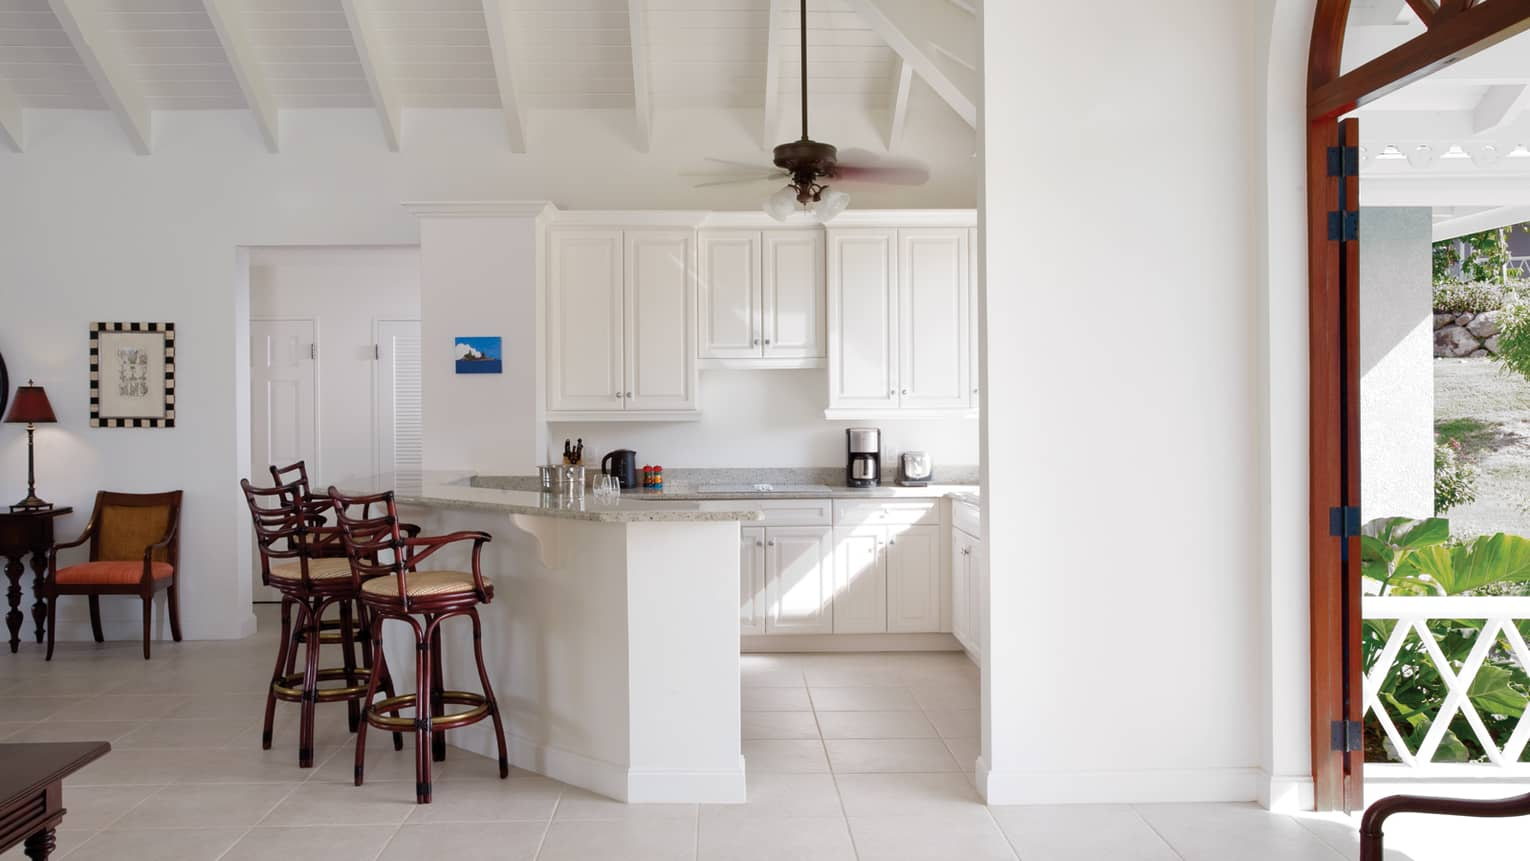 Sunset Hill Residence Villa white kitchen, wood stools at counter